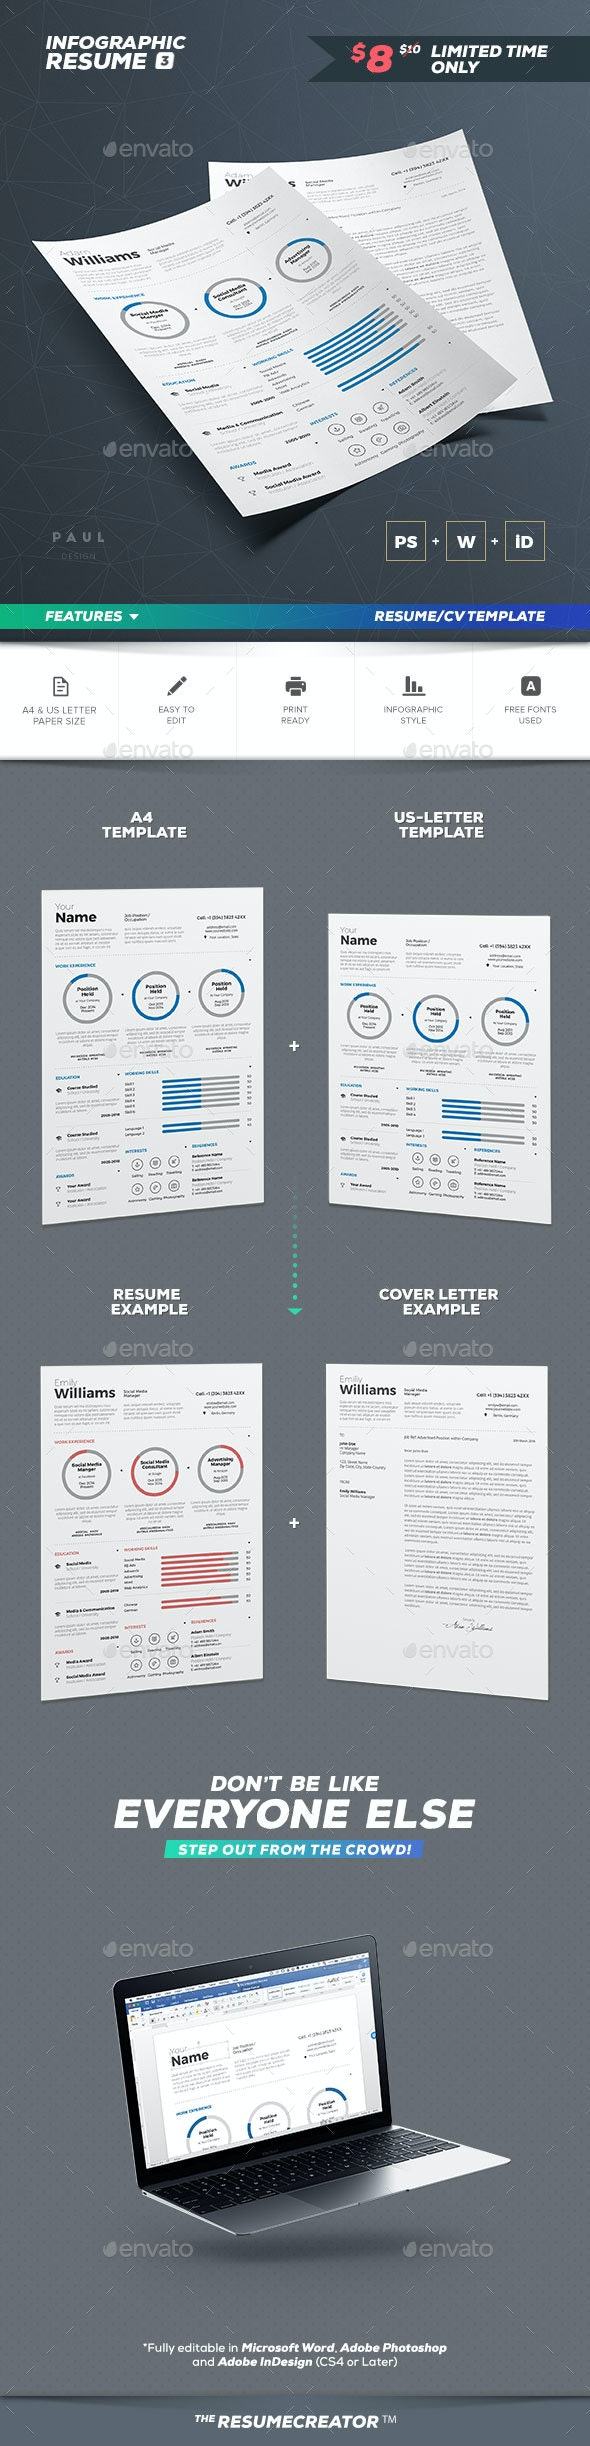 Infographic Resume Vol 3 - Resumes Stationery